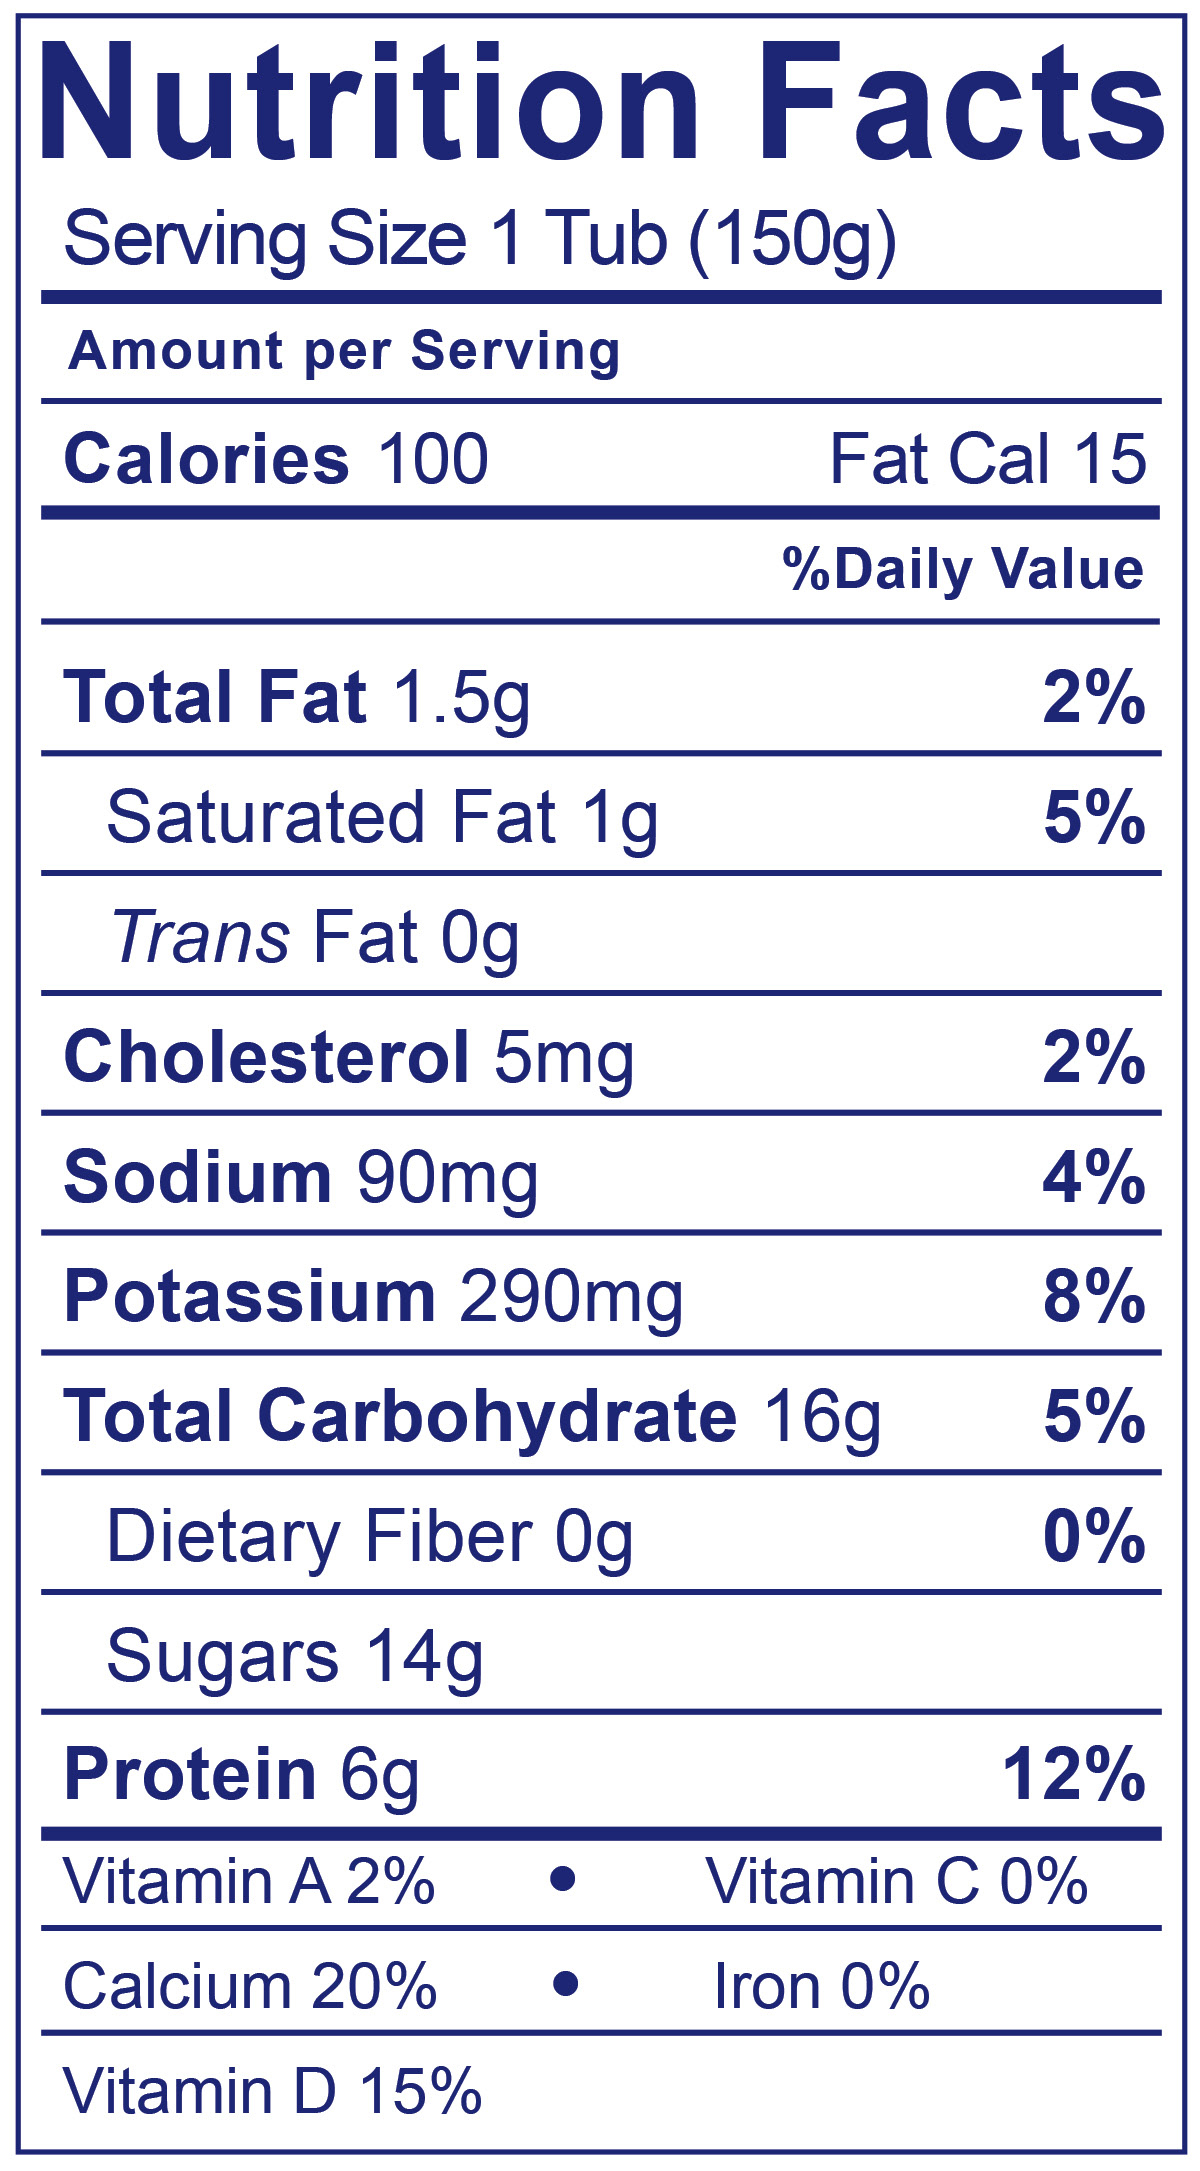 Low Fat Smooth & Creamy Strawberry - Nutrition Facts